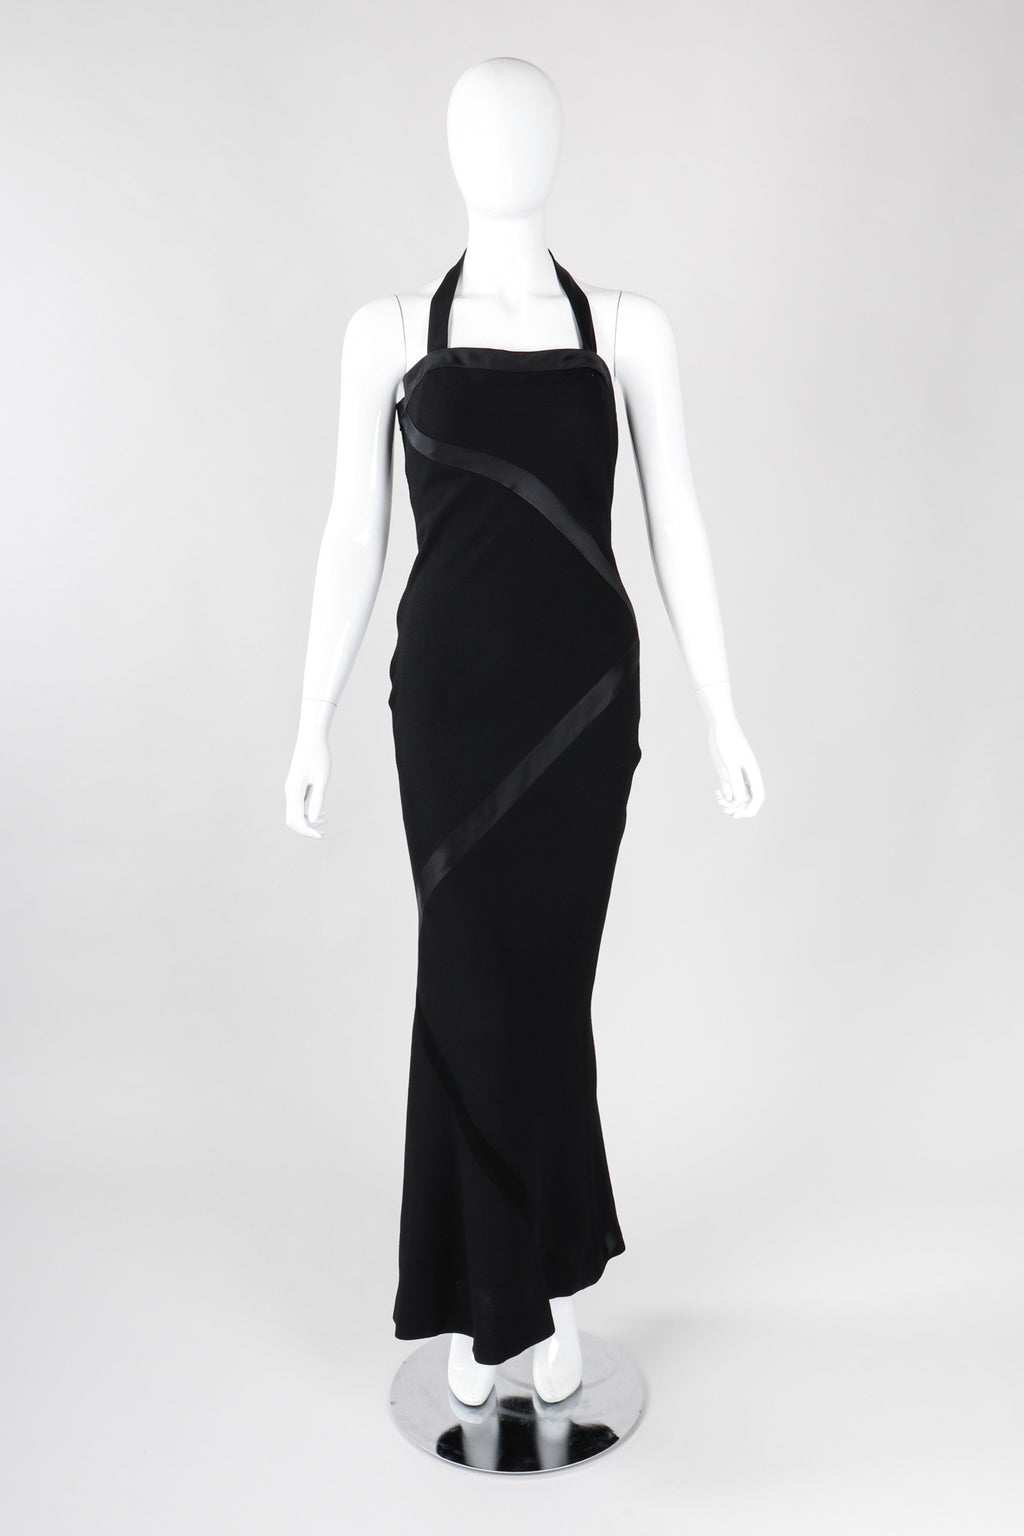 Recess Los Angeles Vintage Sonia Rykiel Minimalist 90s Bias Halter Sheath Gown